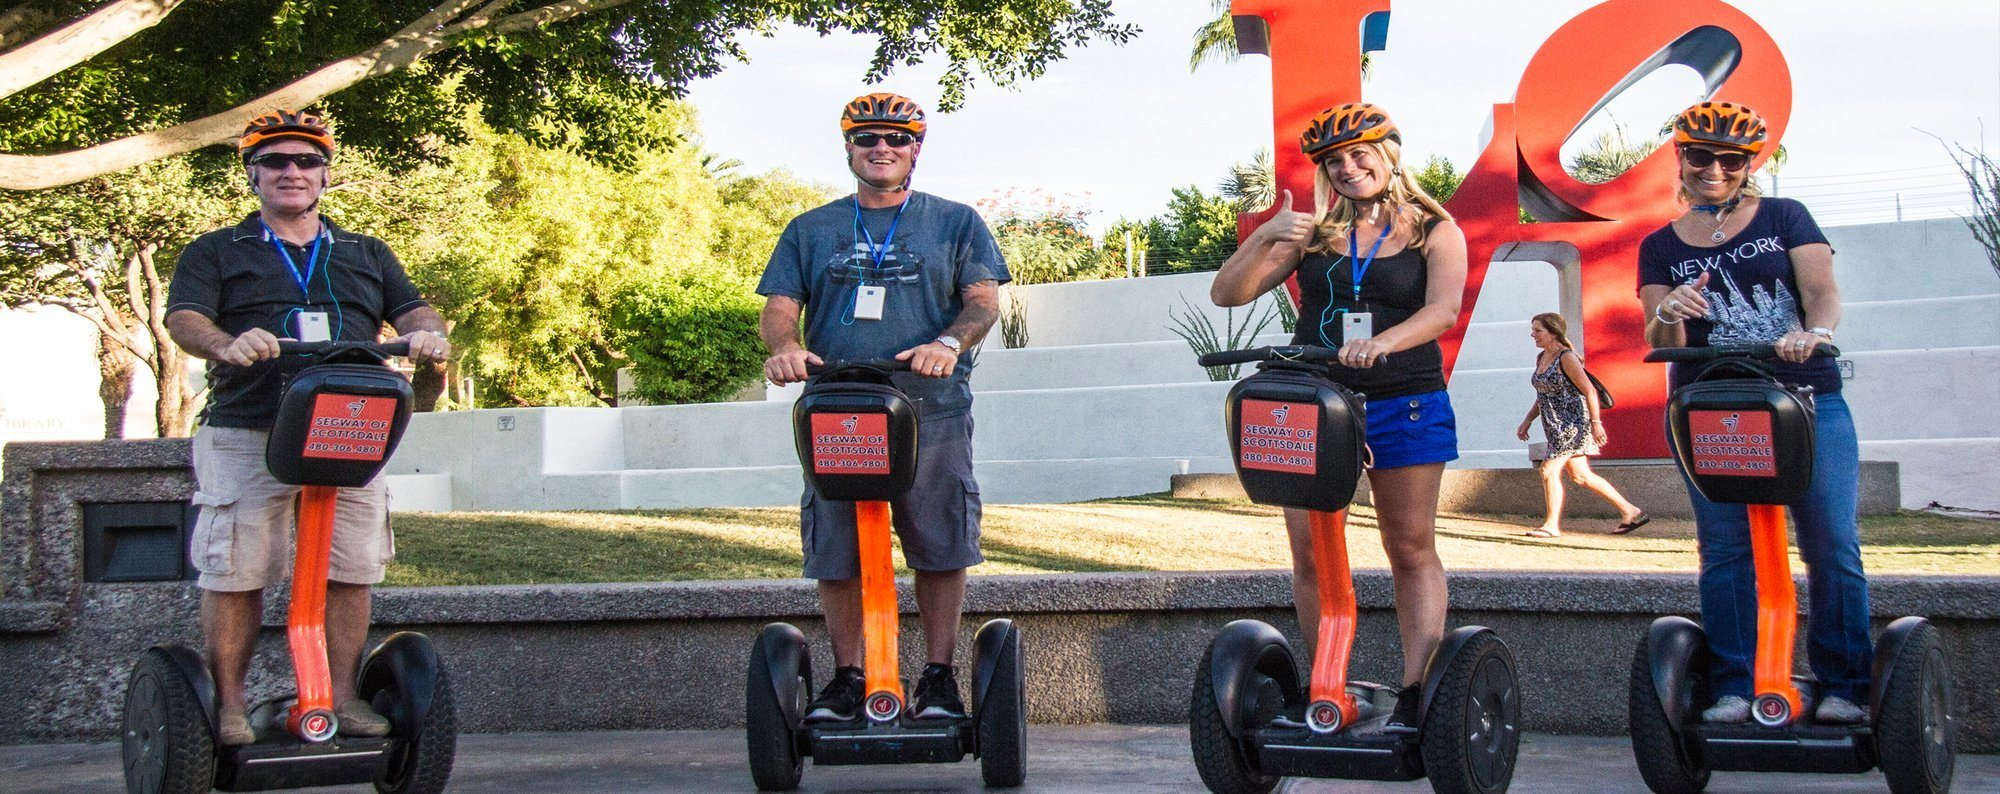 Old Town Segway Tour with Segway of Scottsdale